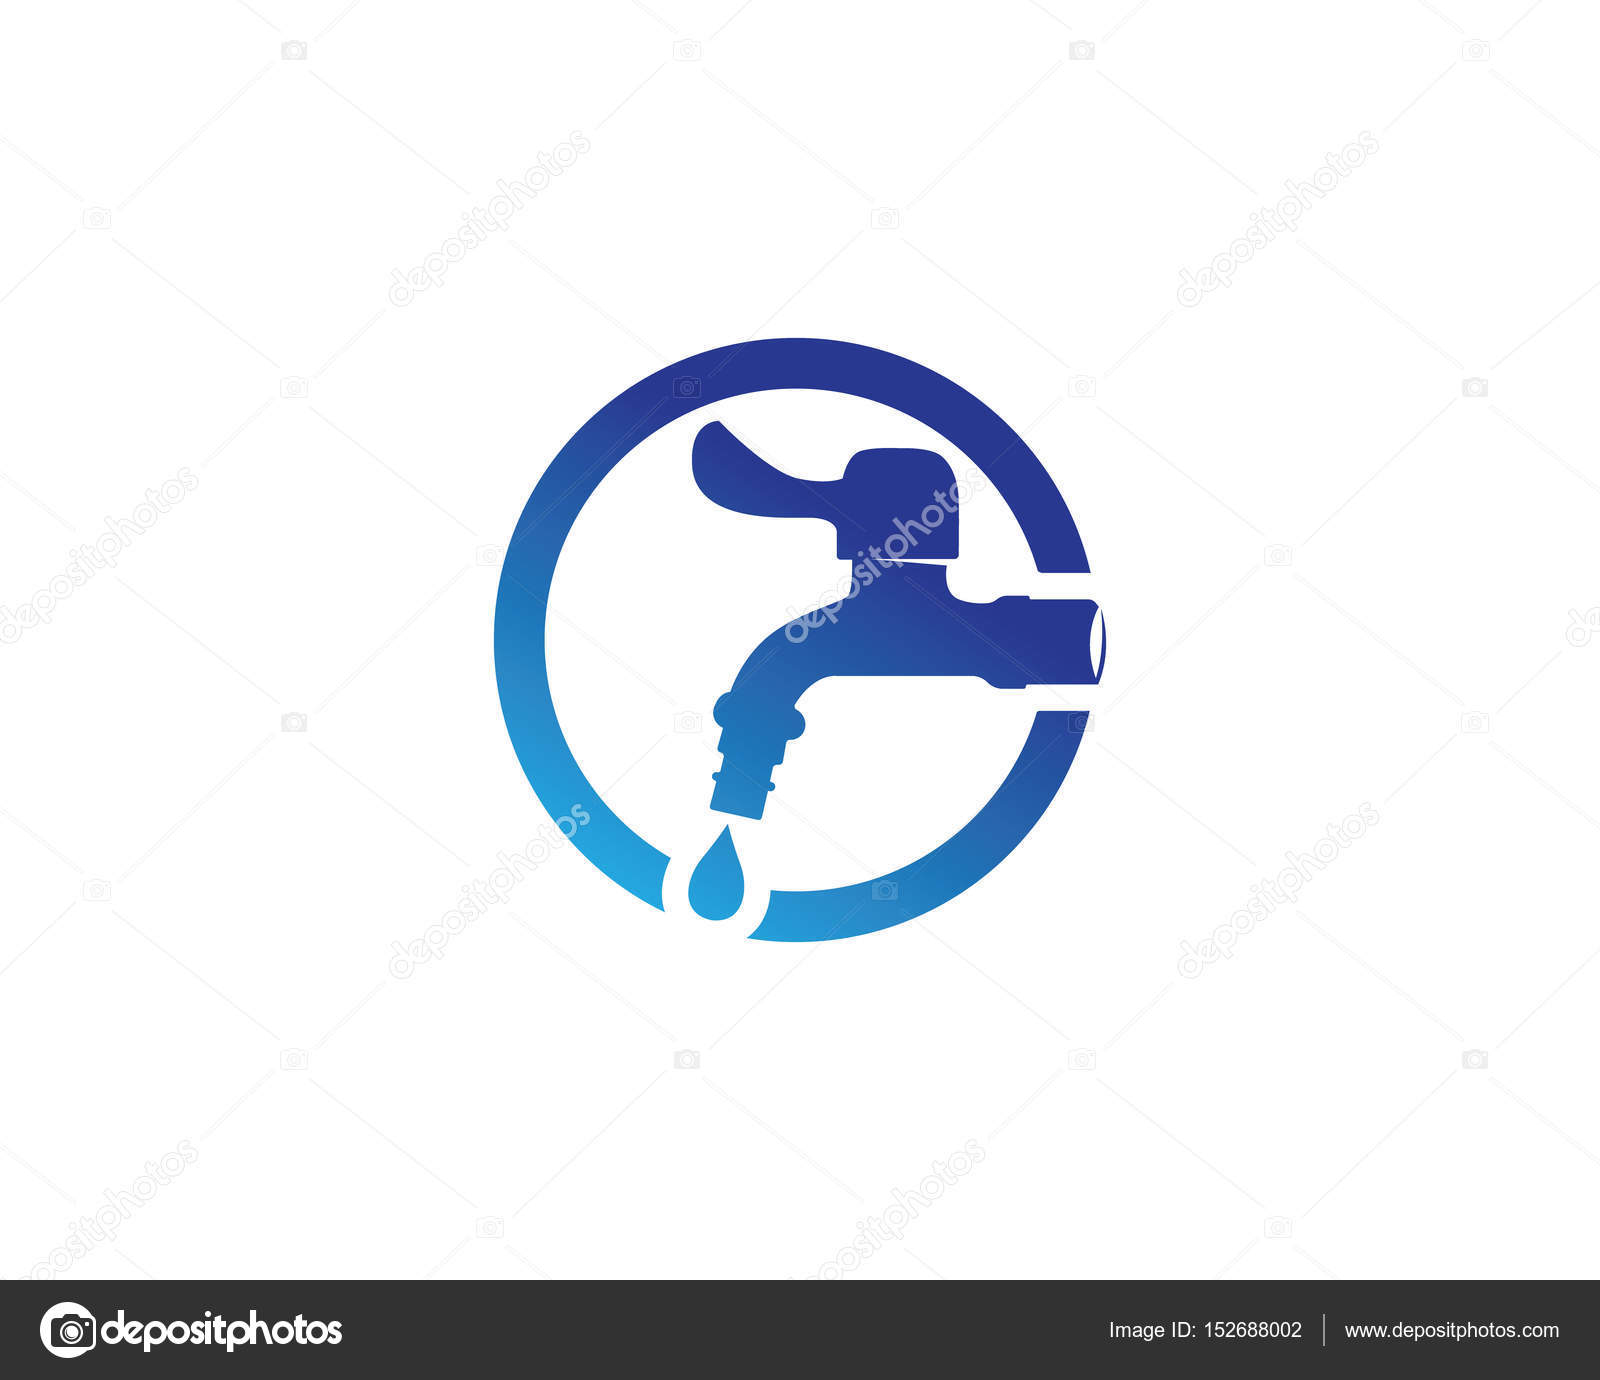 water faucet logo and symbols — Stock Vector © elaelo #152688002